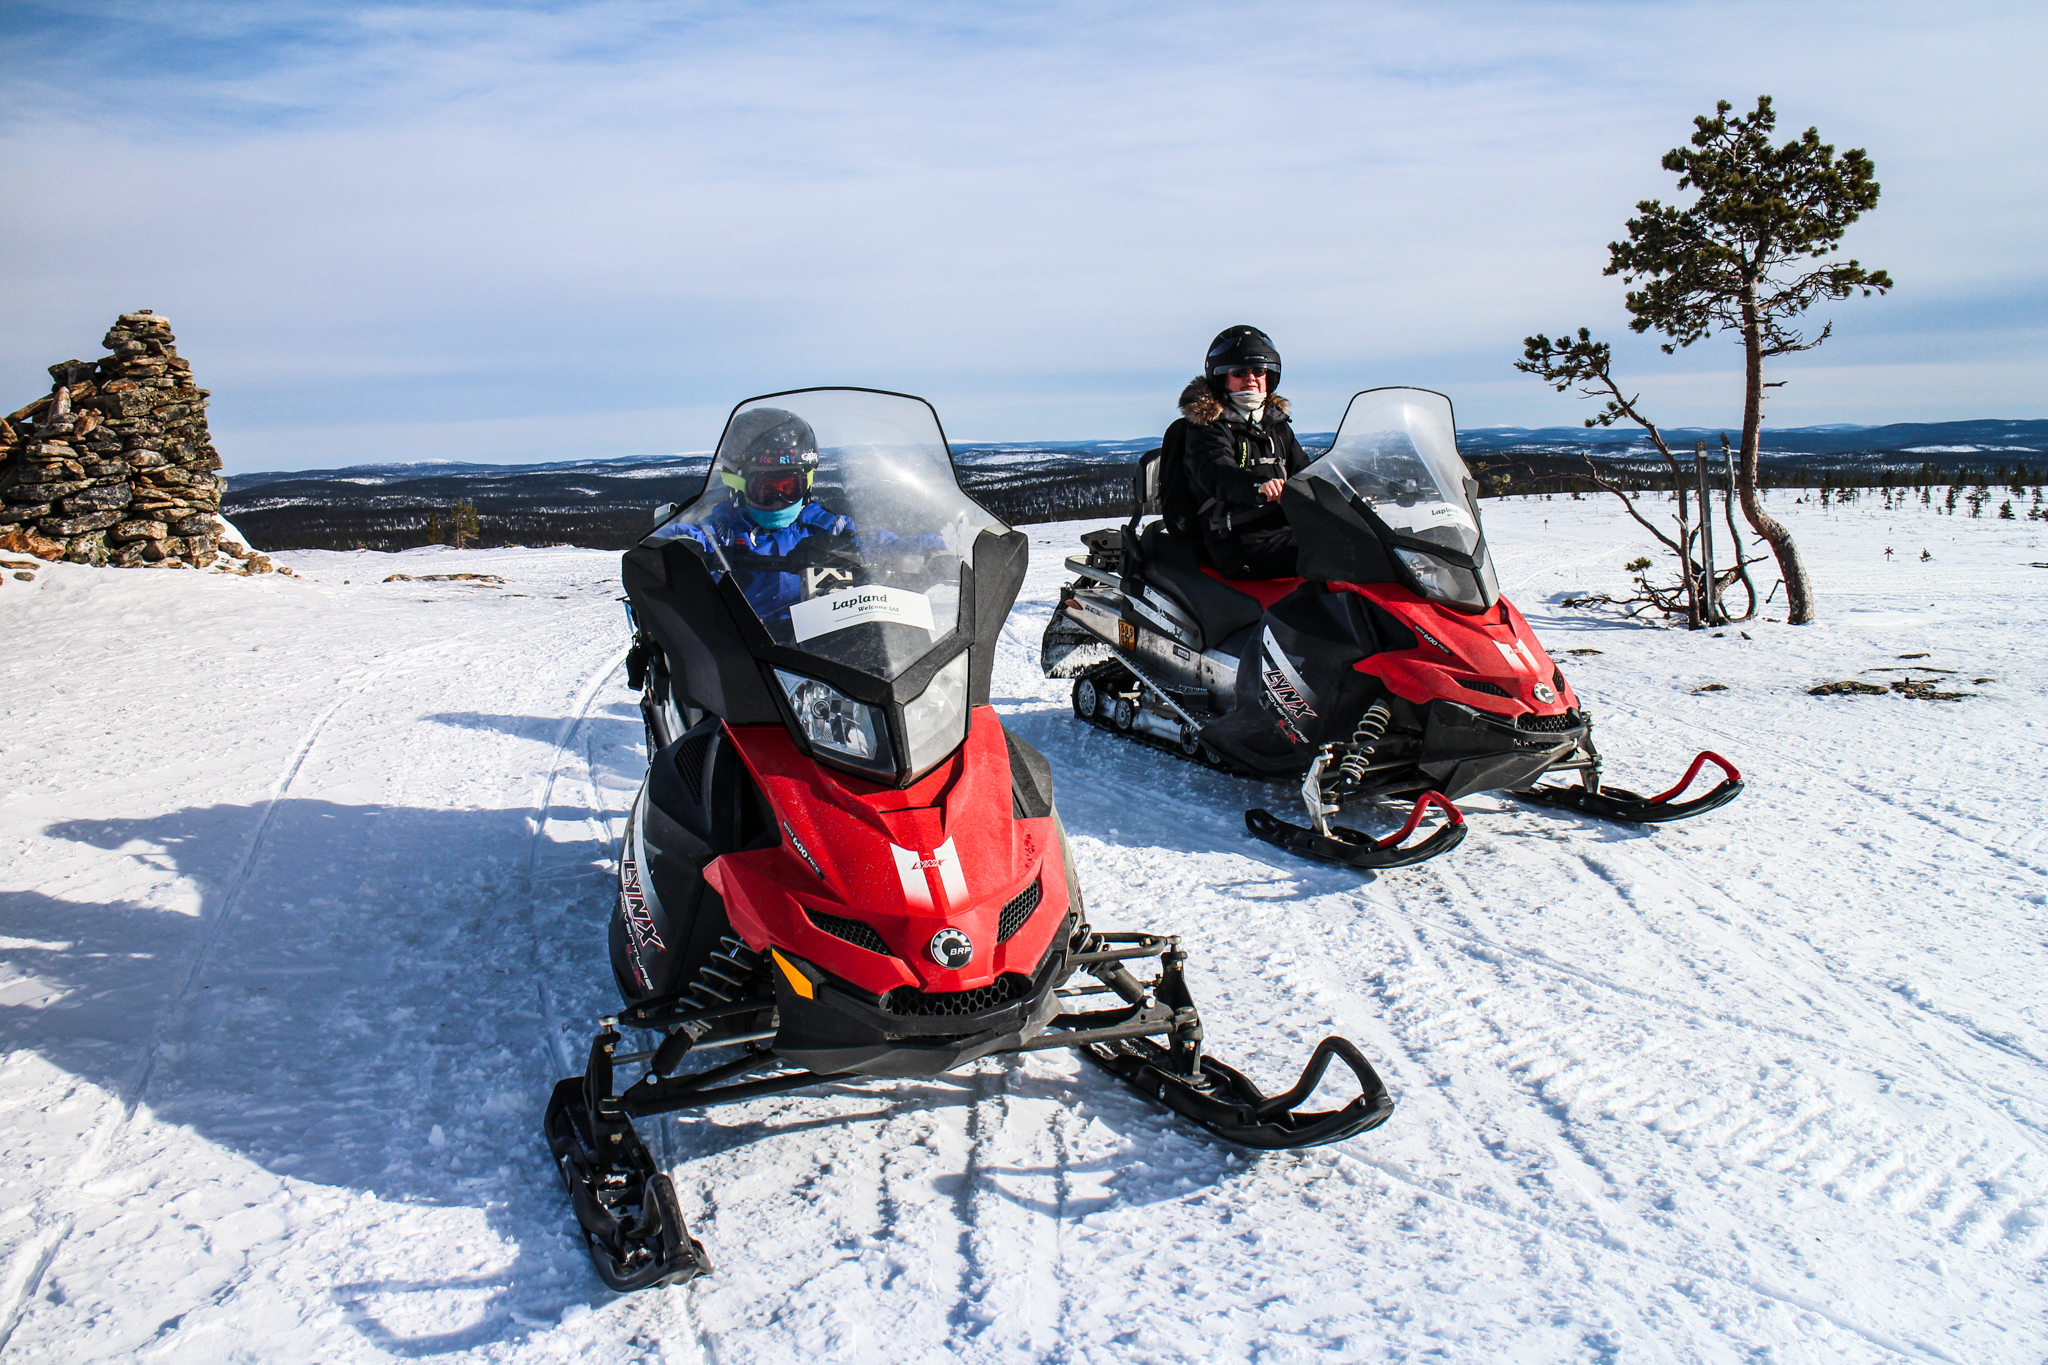 two people sitting on snowmobiles and landscape in background